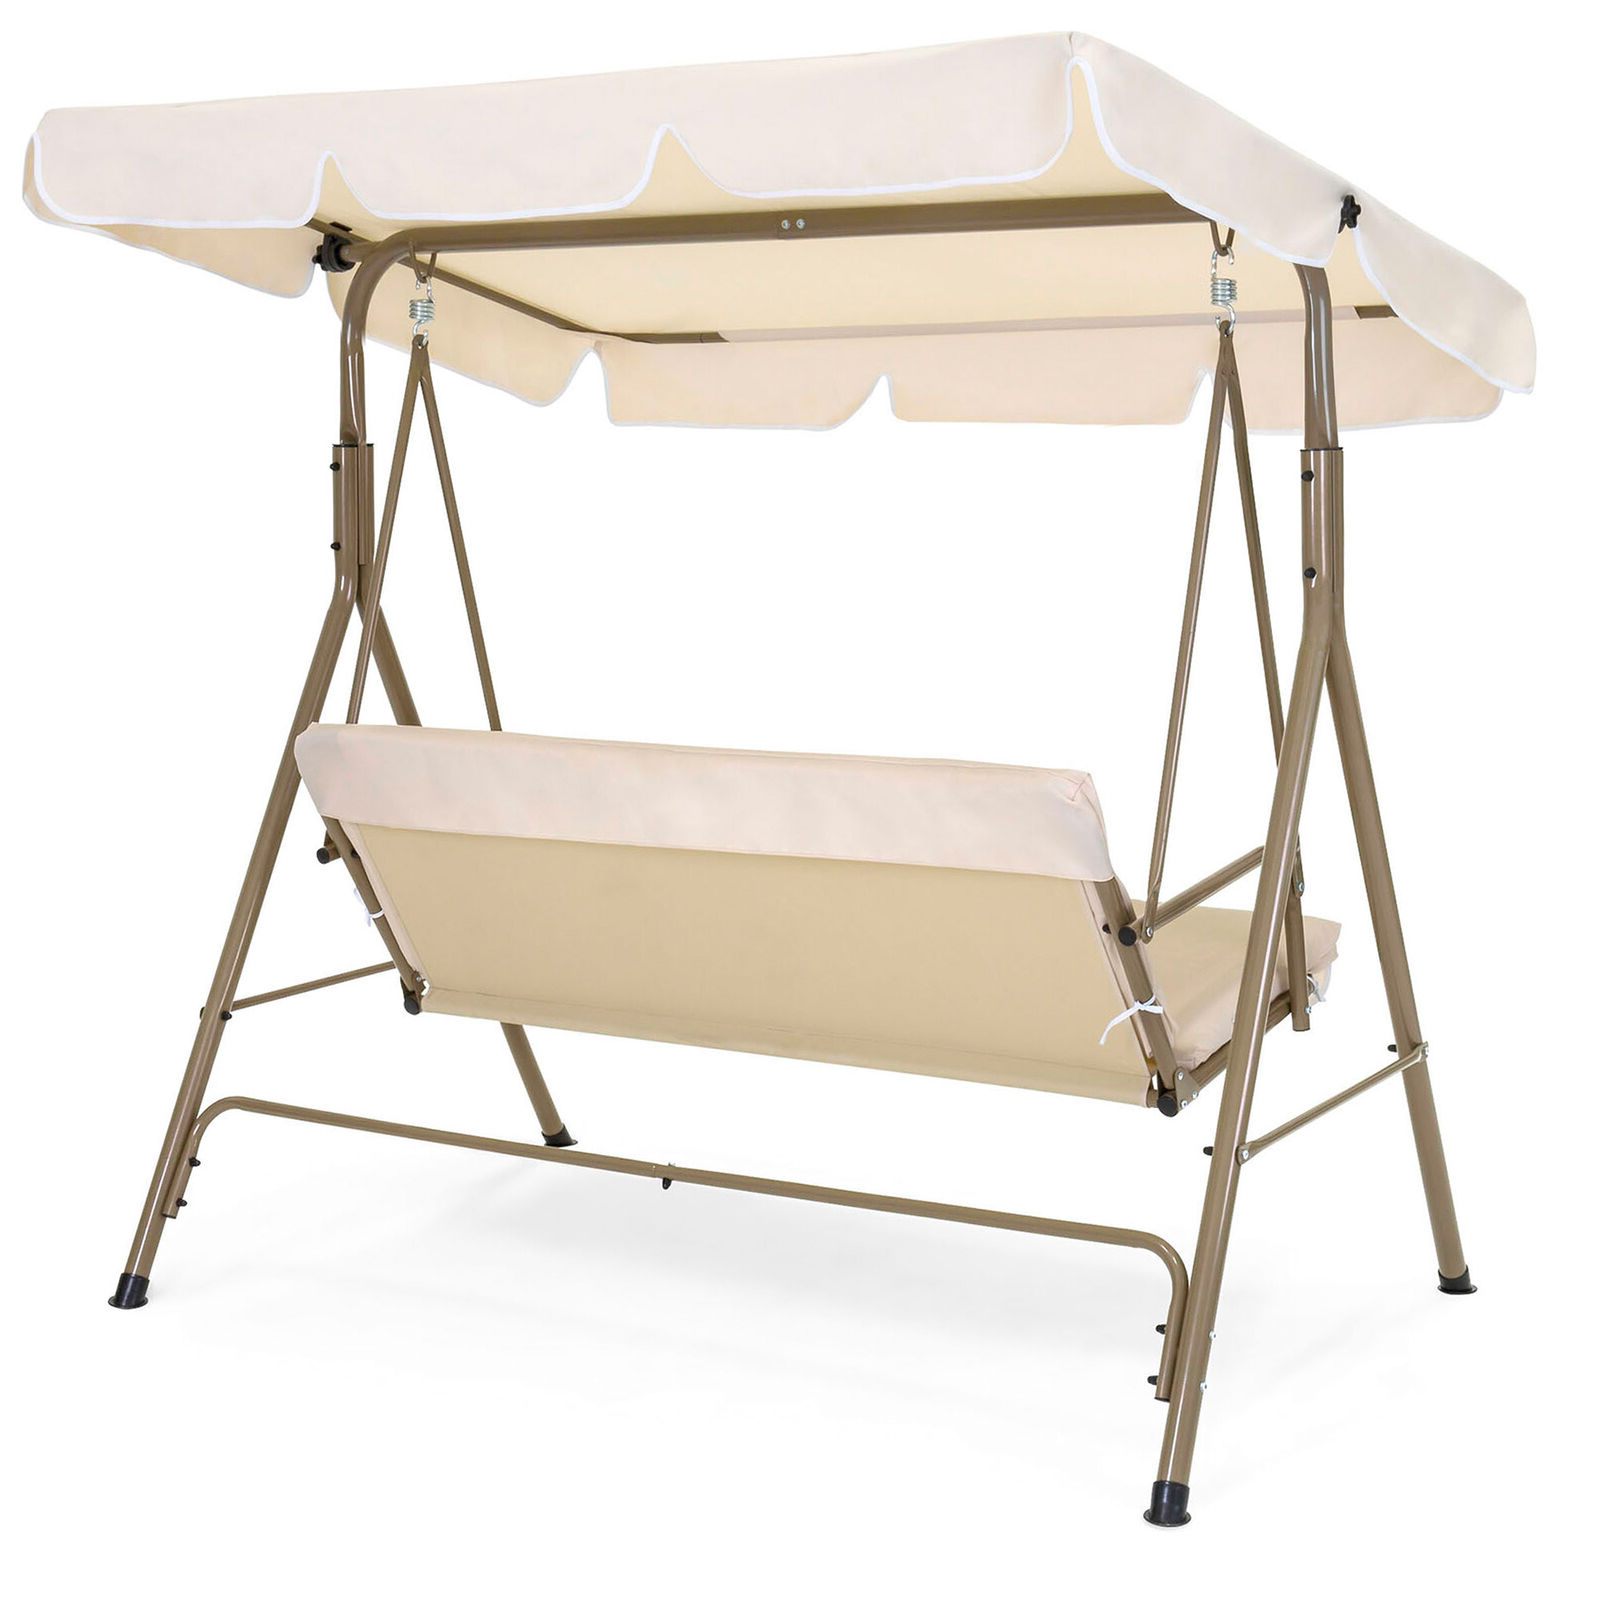 2 Person Outdoor Convertible Canopy Swing Gliders With Removable Cushions Beige With 2019 Best Choice Products Outdoor 2 Person Patio Canopy Swing – Burgundy (View 6 of 30)